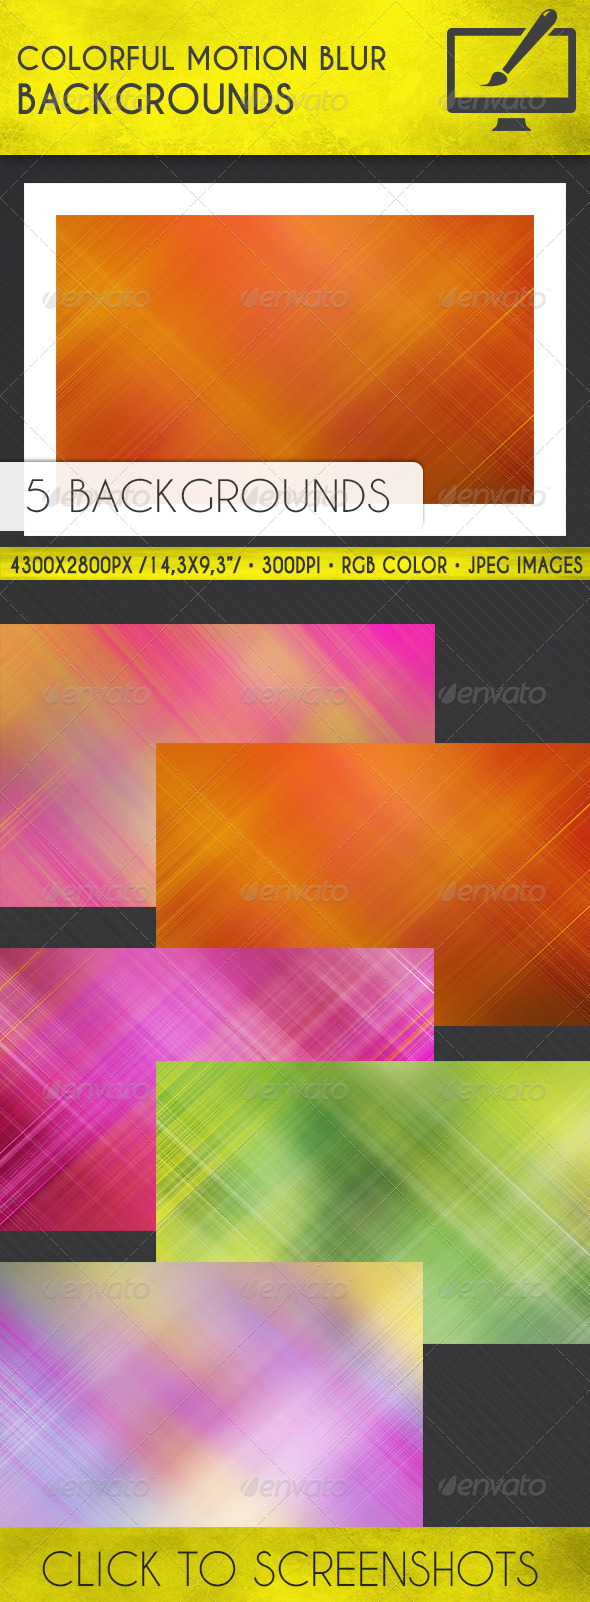 GraphicRiver Colorful Motion Blur Backgrounds 7748718